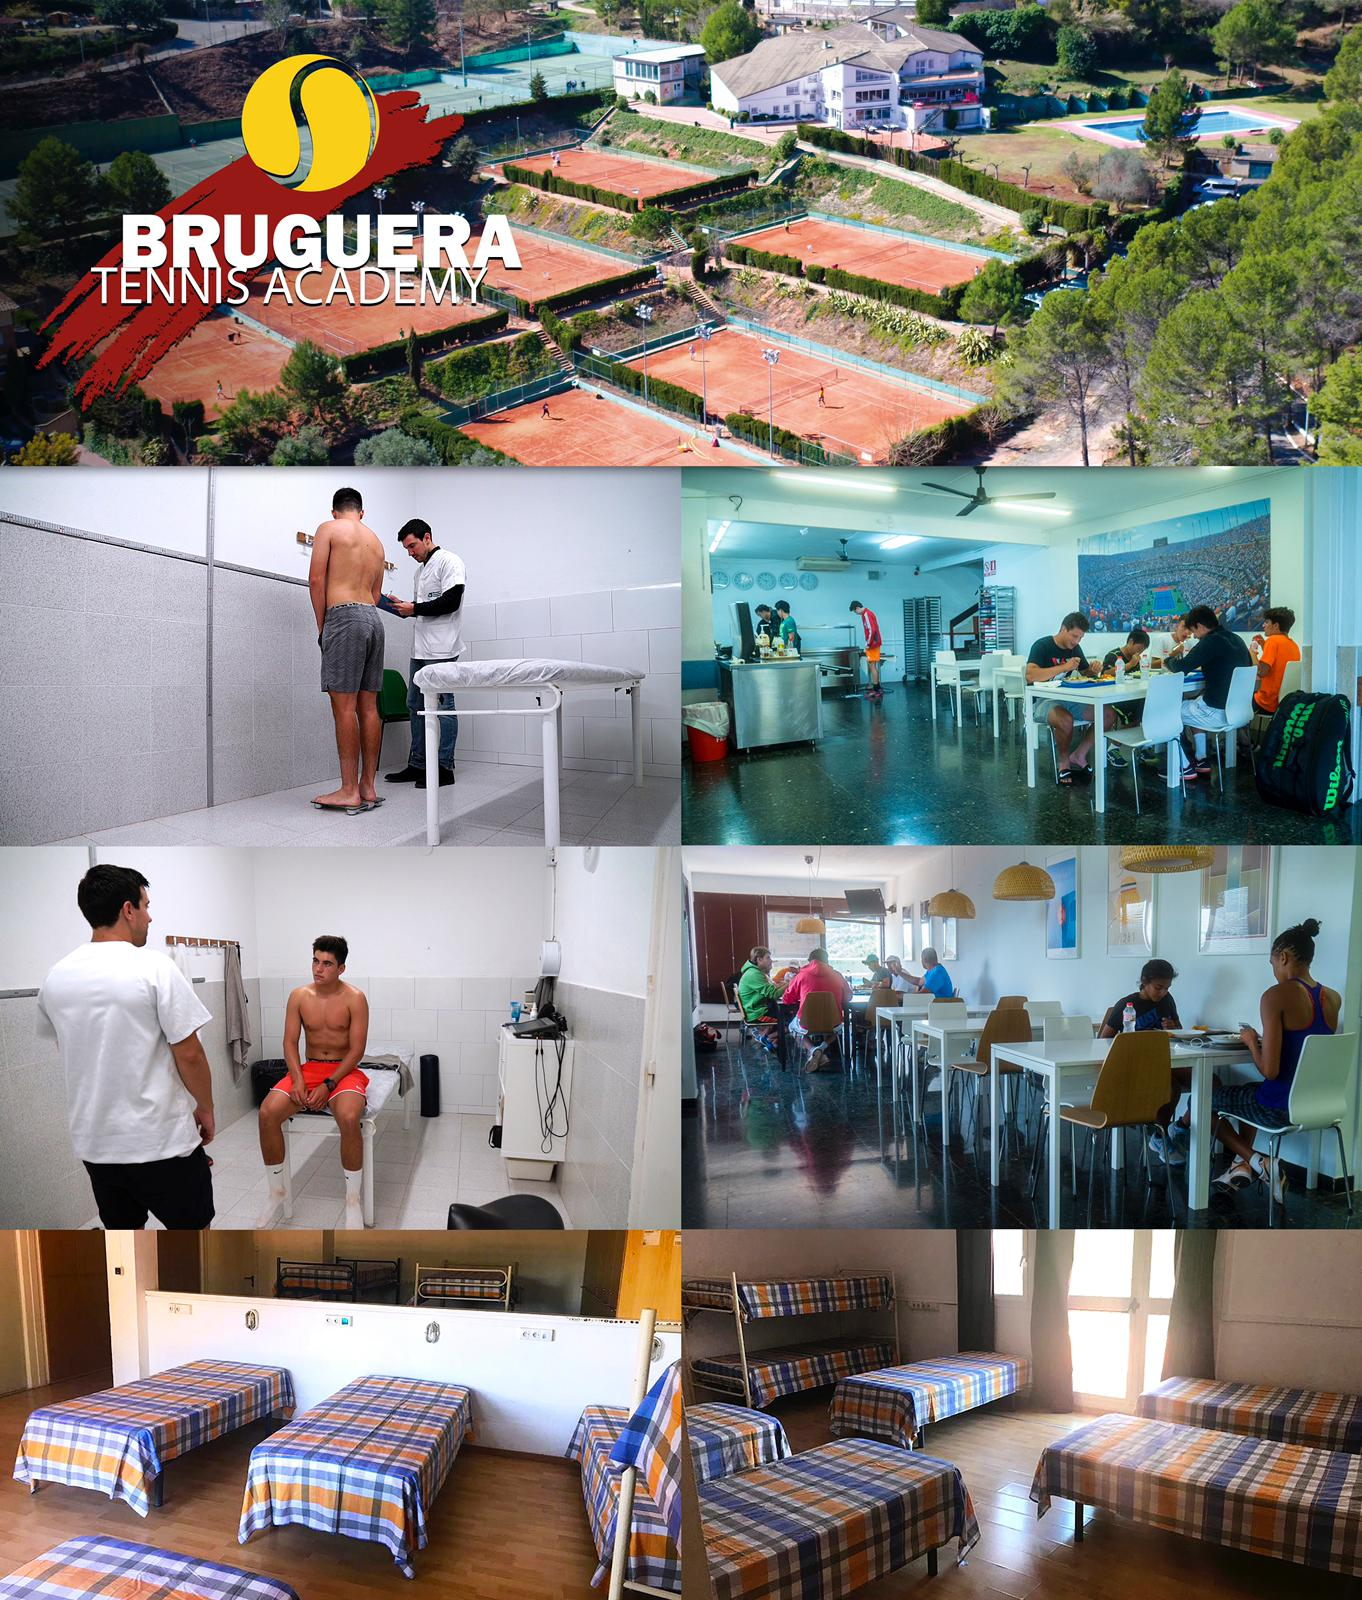 Bruguera High Performance Center of Tennis at Barcelona